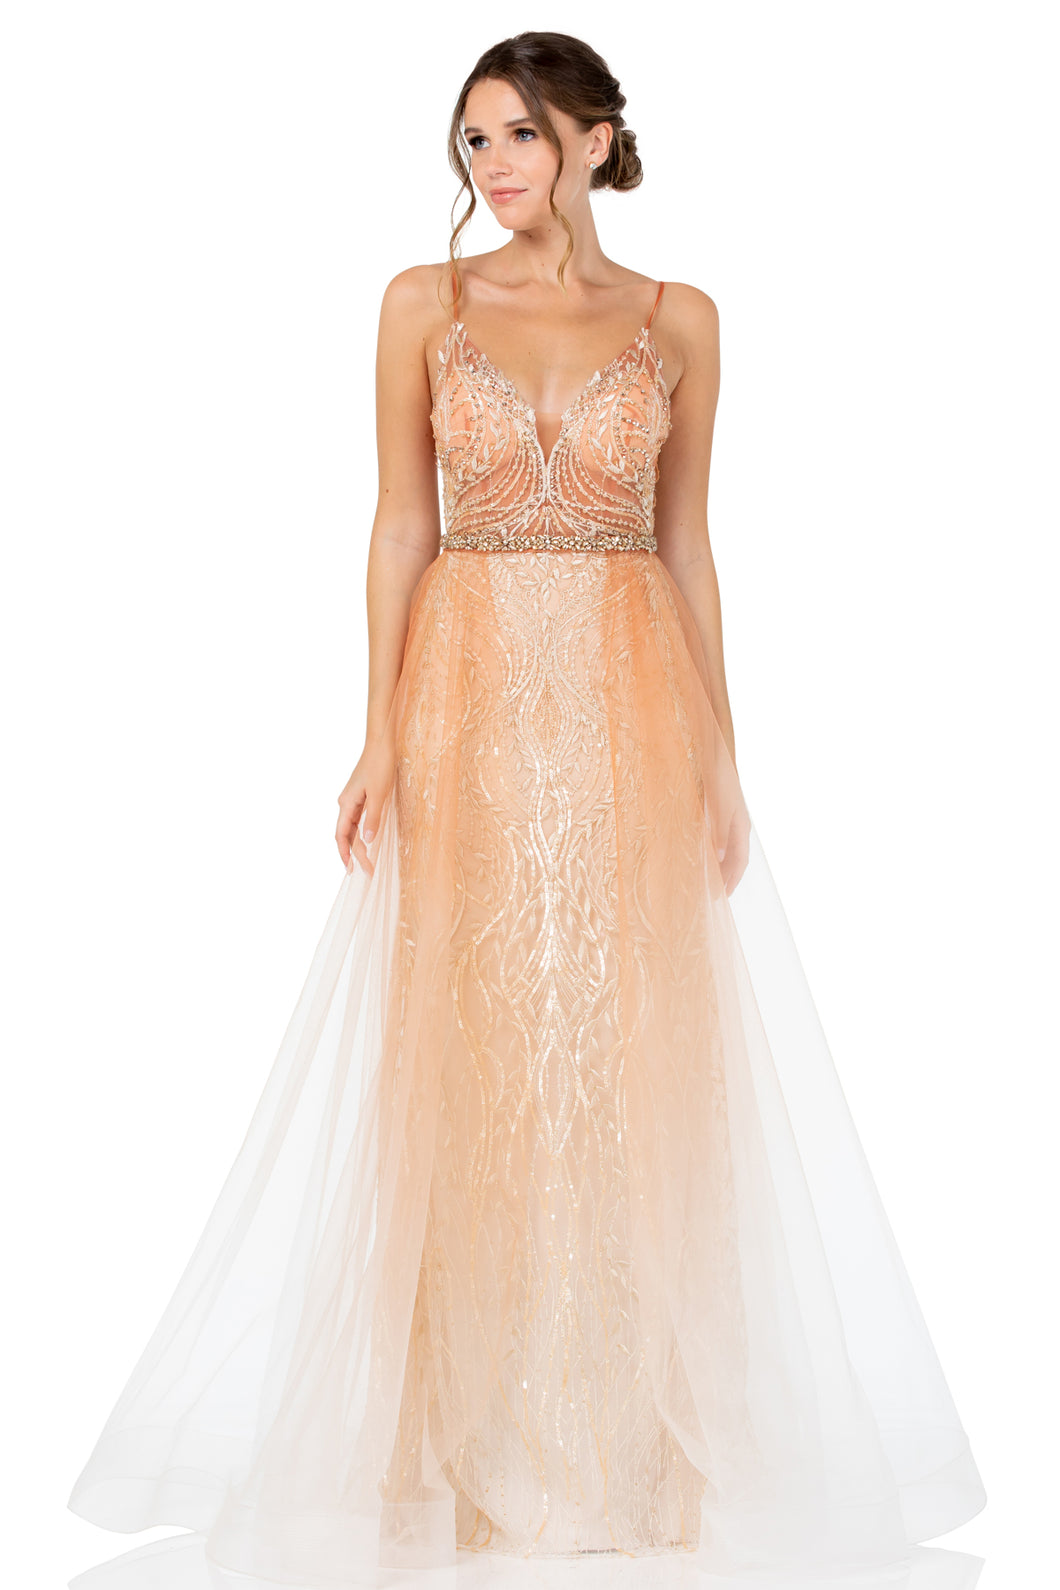 BC RR33048 - A-Line V-Neck Lace Gown with Tulle Overlay and Embellished Lace Sheer Bodice - Diggz Prom